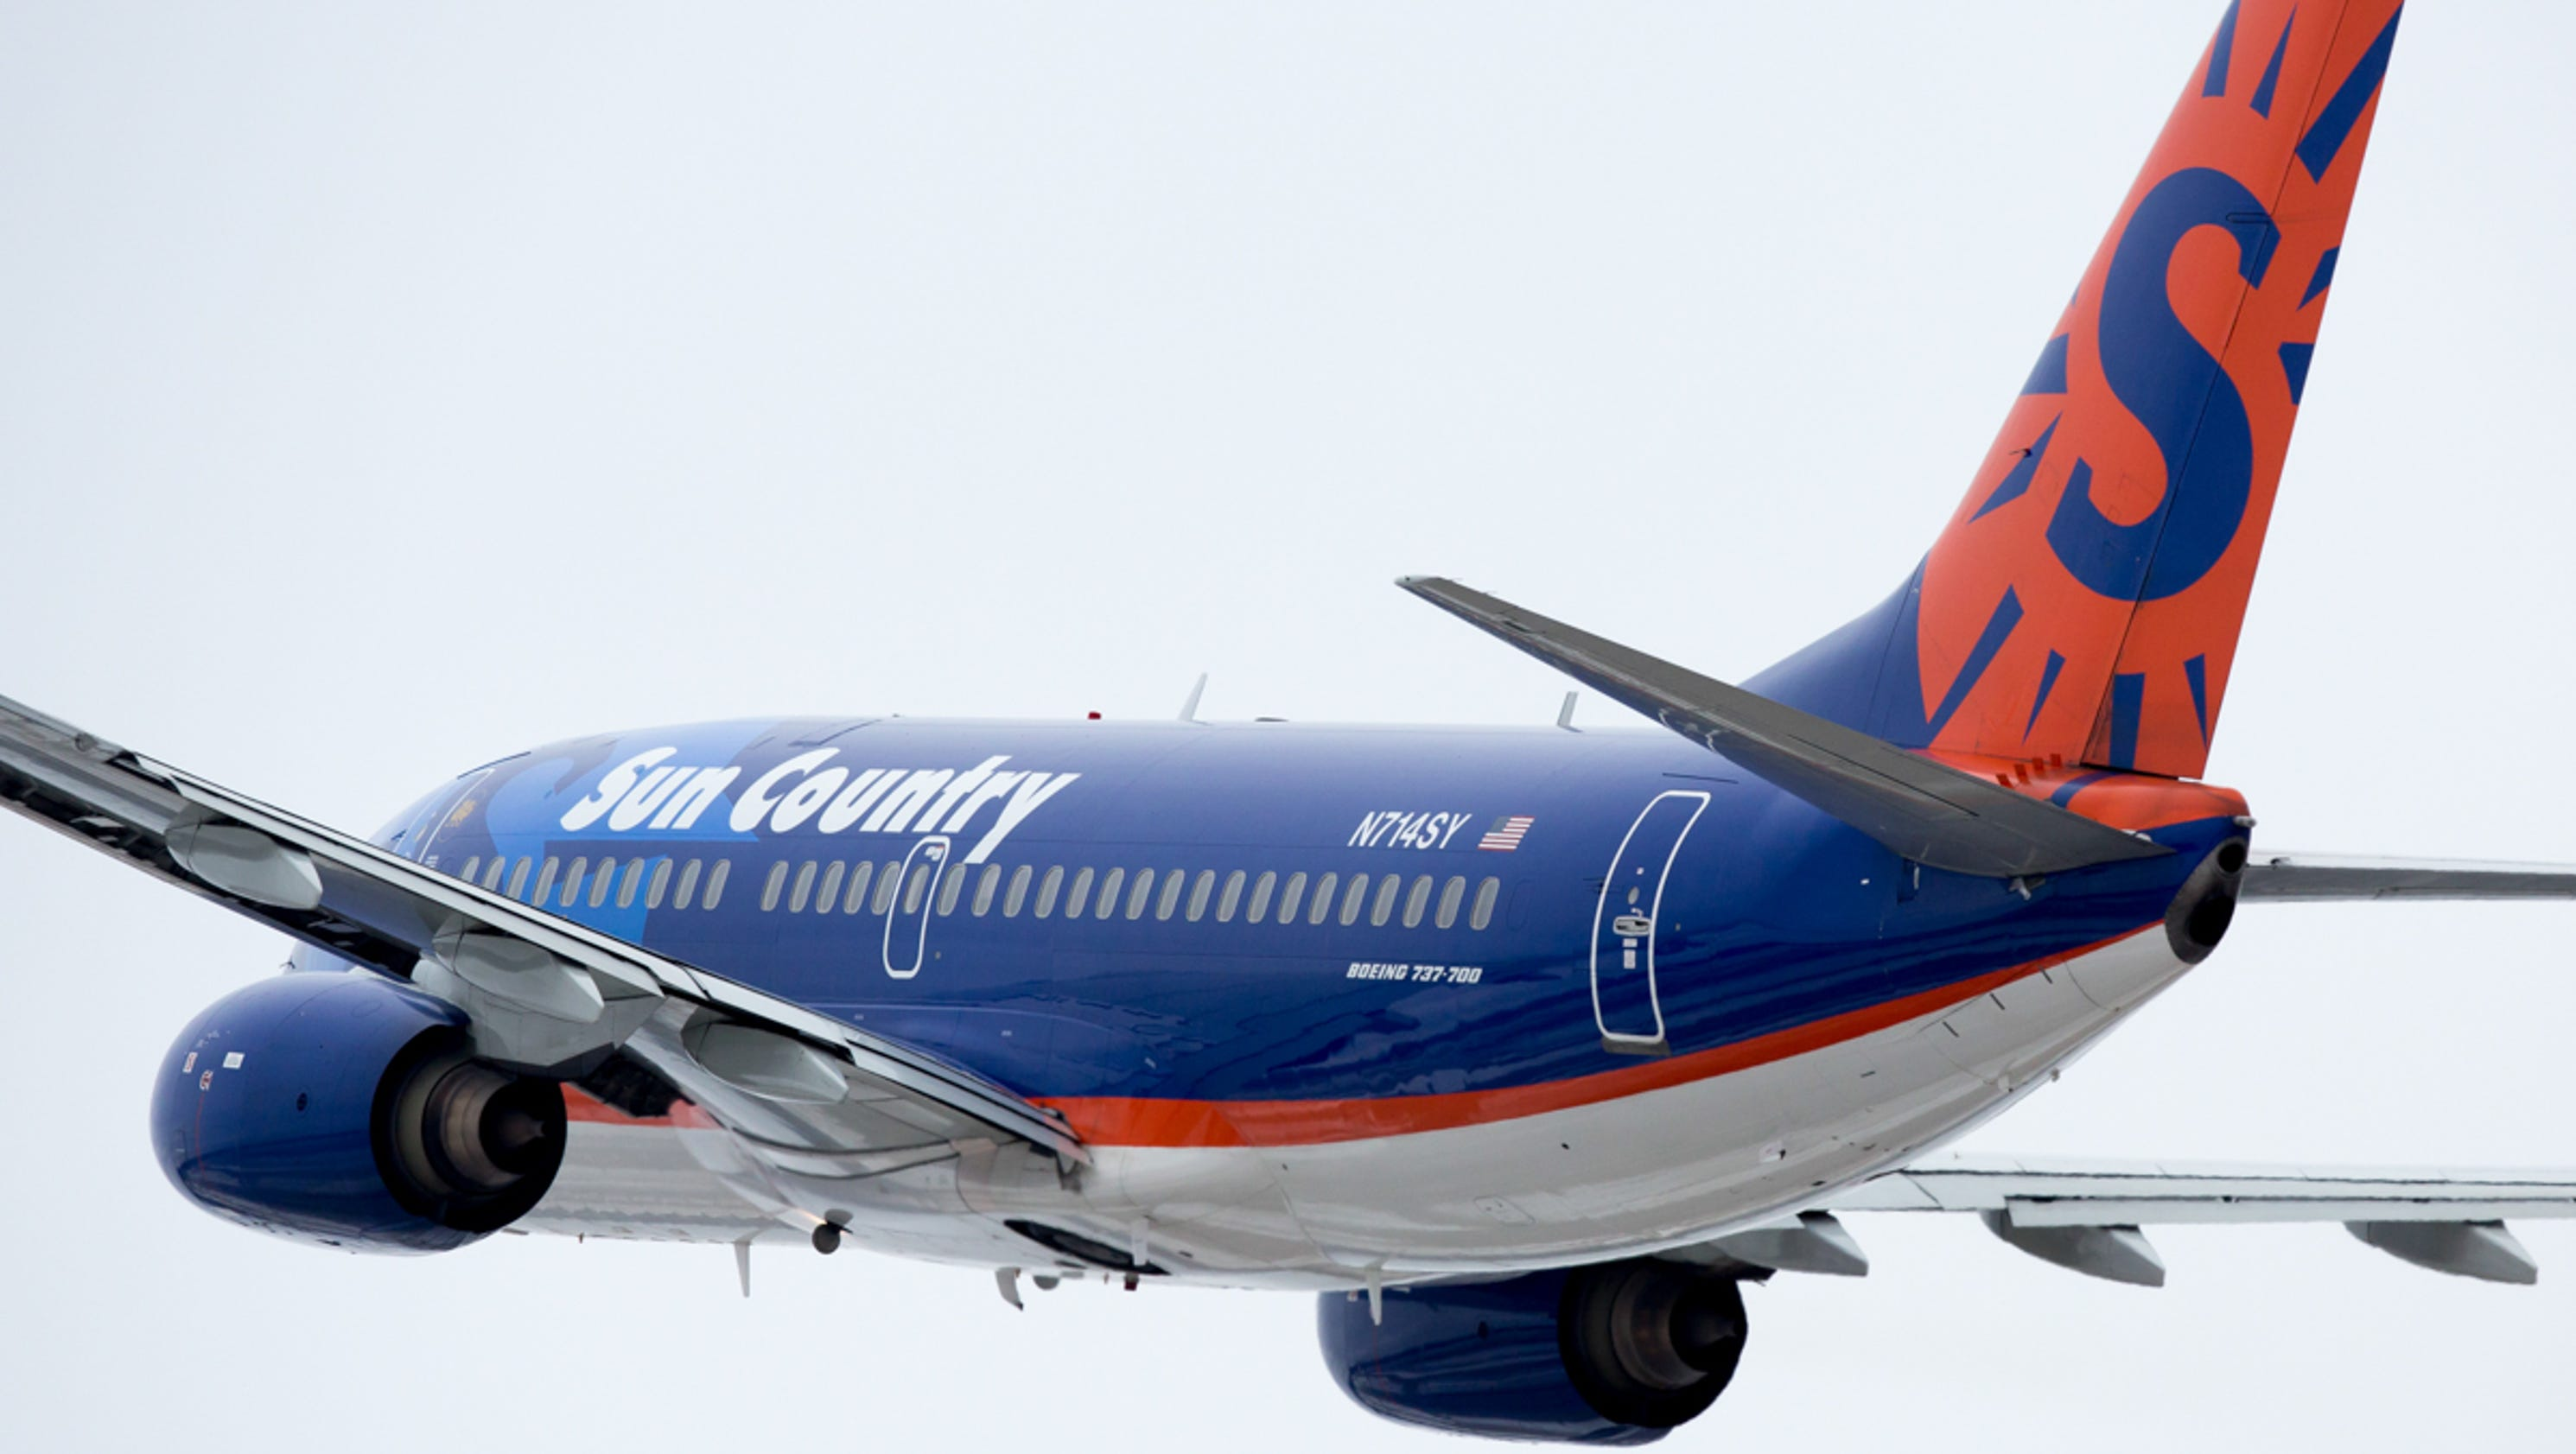 Sun country airlines deals